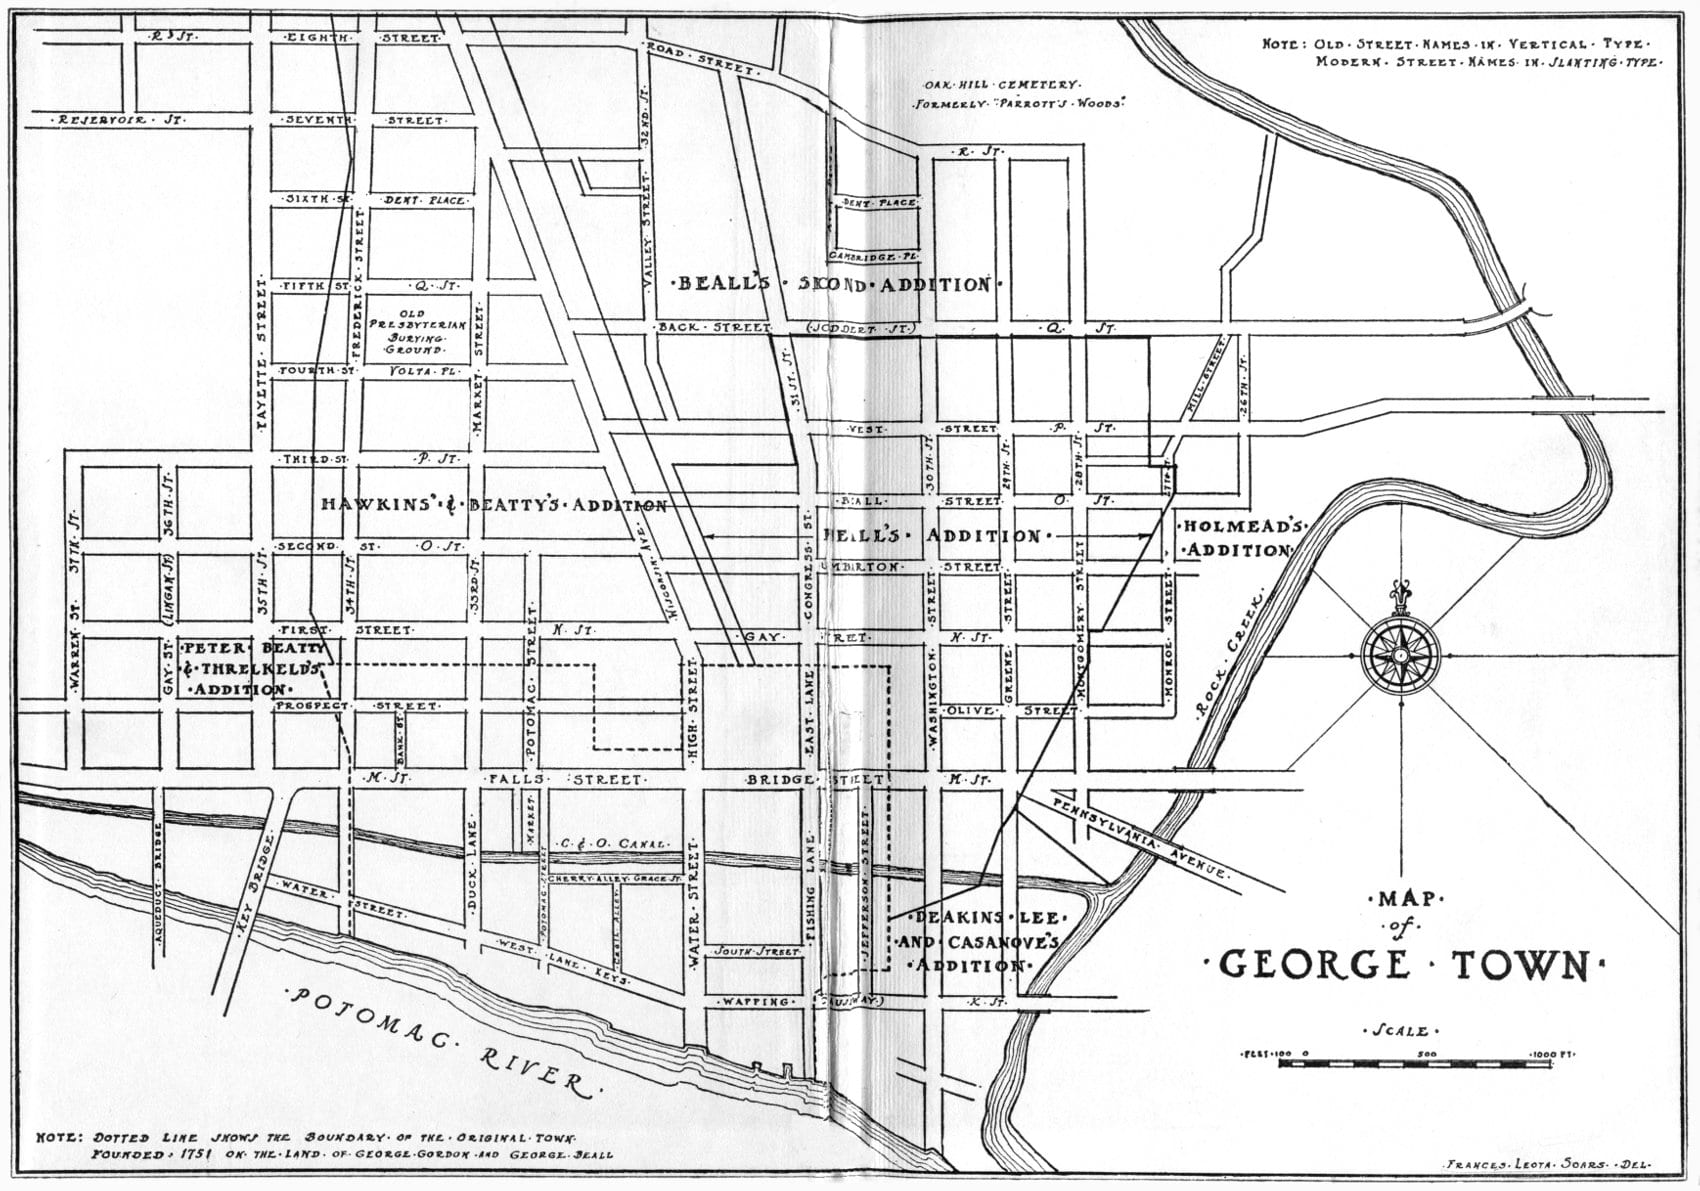 Georgetown street map with old names (gutenberg.org)